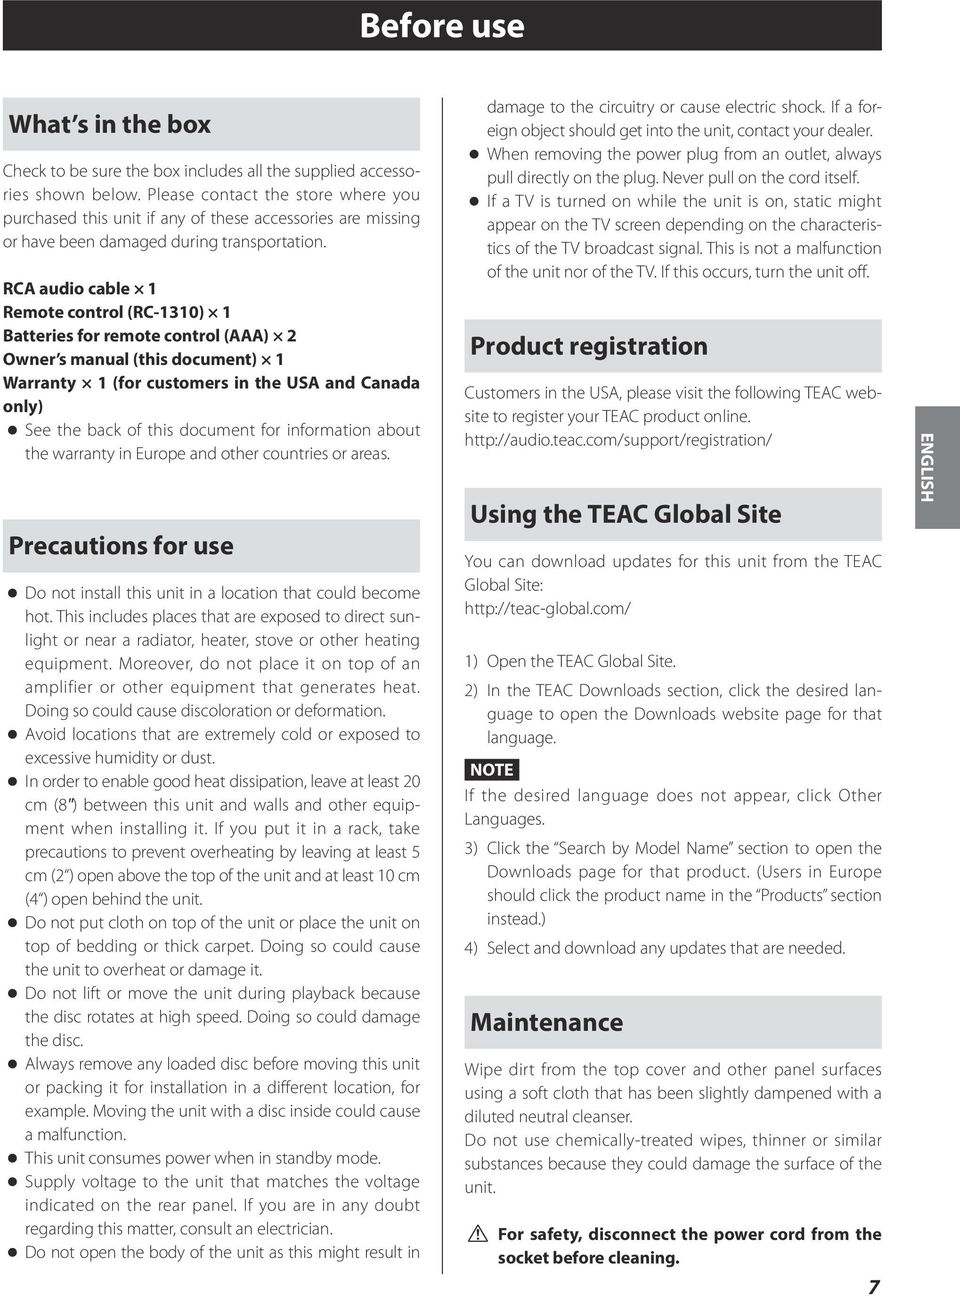 RCA audio cable 1 Remote control (RC-1310) 1 Batteries for remote control (AAA) 2 Owner s manual (this document) 1 Warranty 1 (for customers in the USA and Canada only) See the back of this document